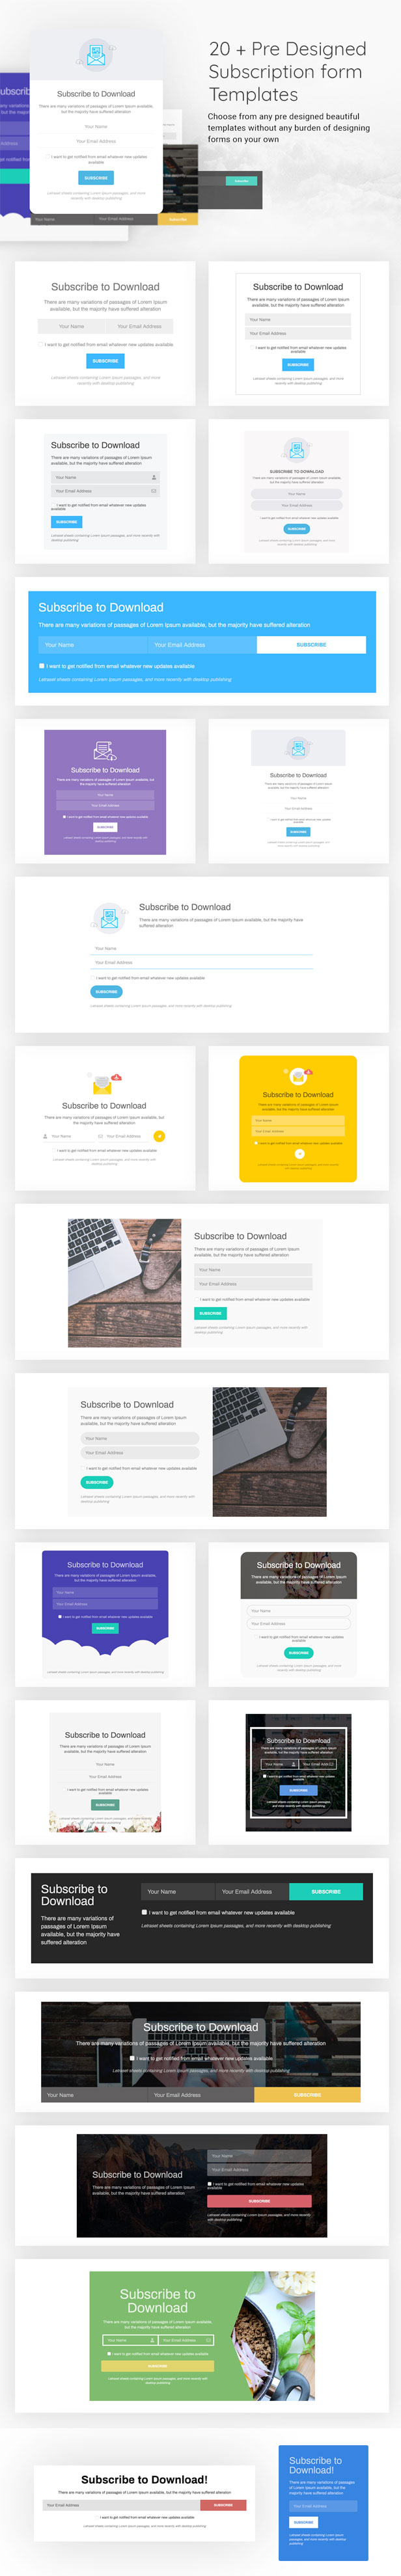 Subscribe to Download - An advanced subscription plugin for WordPress - 7